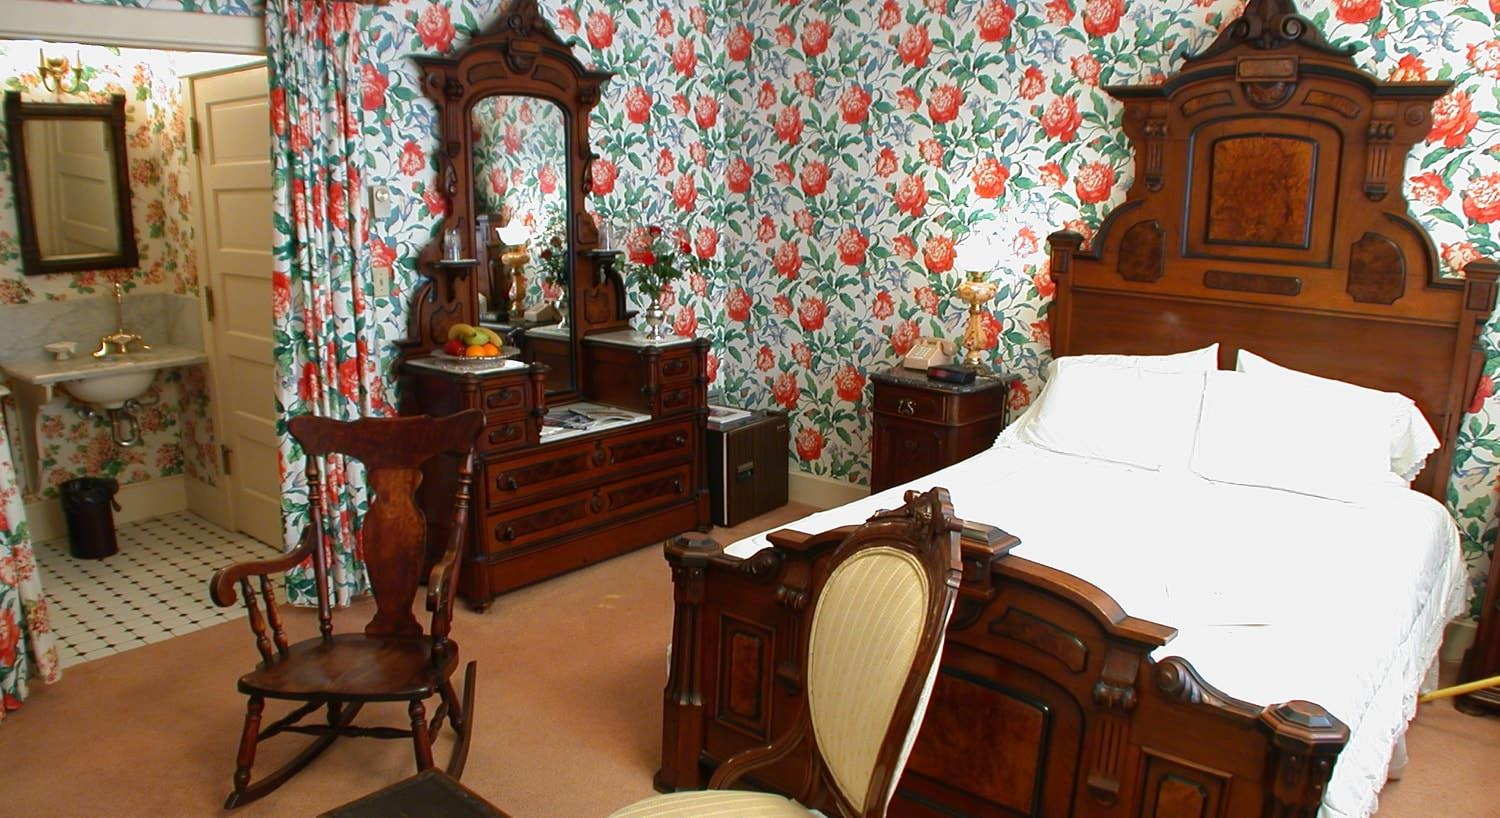 Carriage guest room with red and green papered walls, carpeting, carved wooden bed, elegant vanity dresser with mirror, and rocking chair